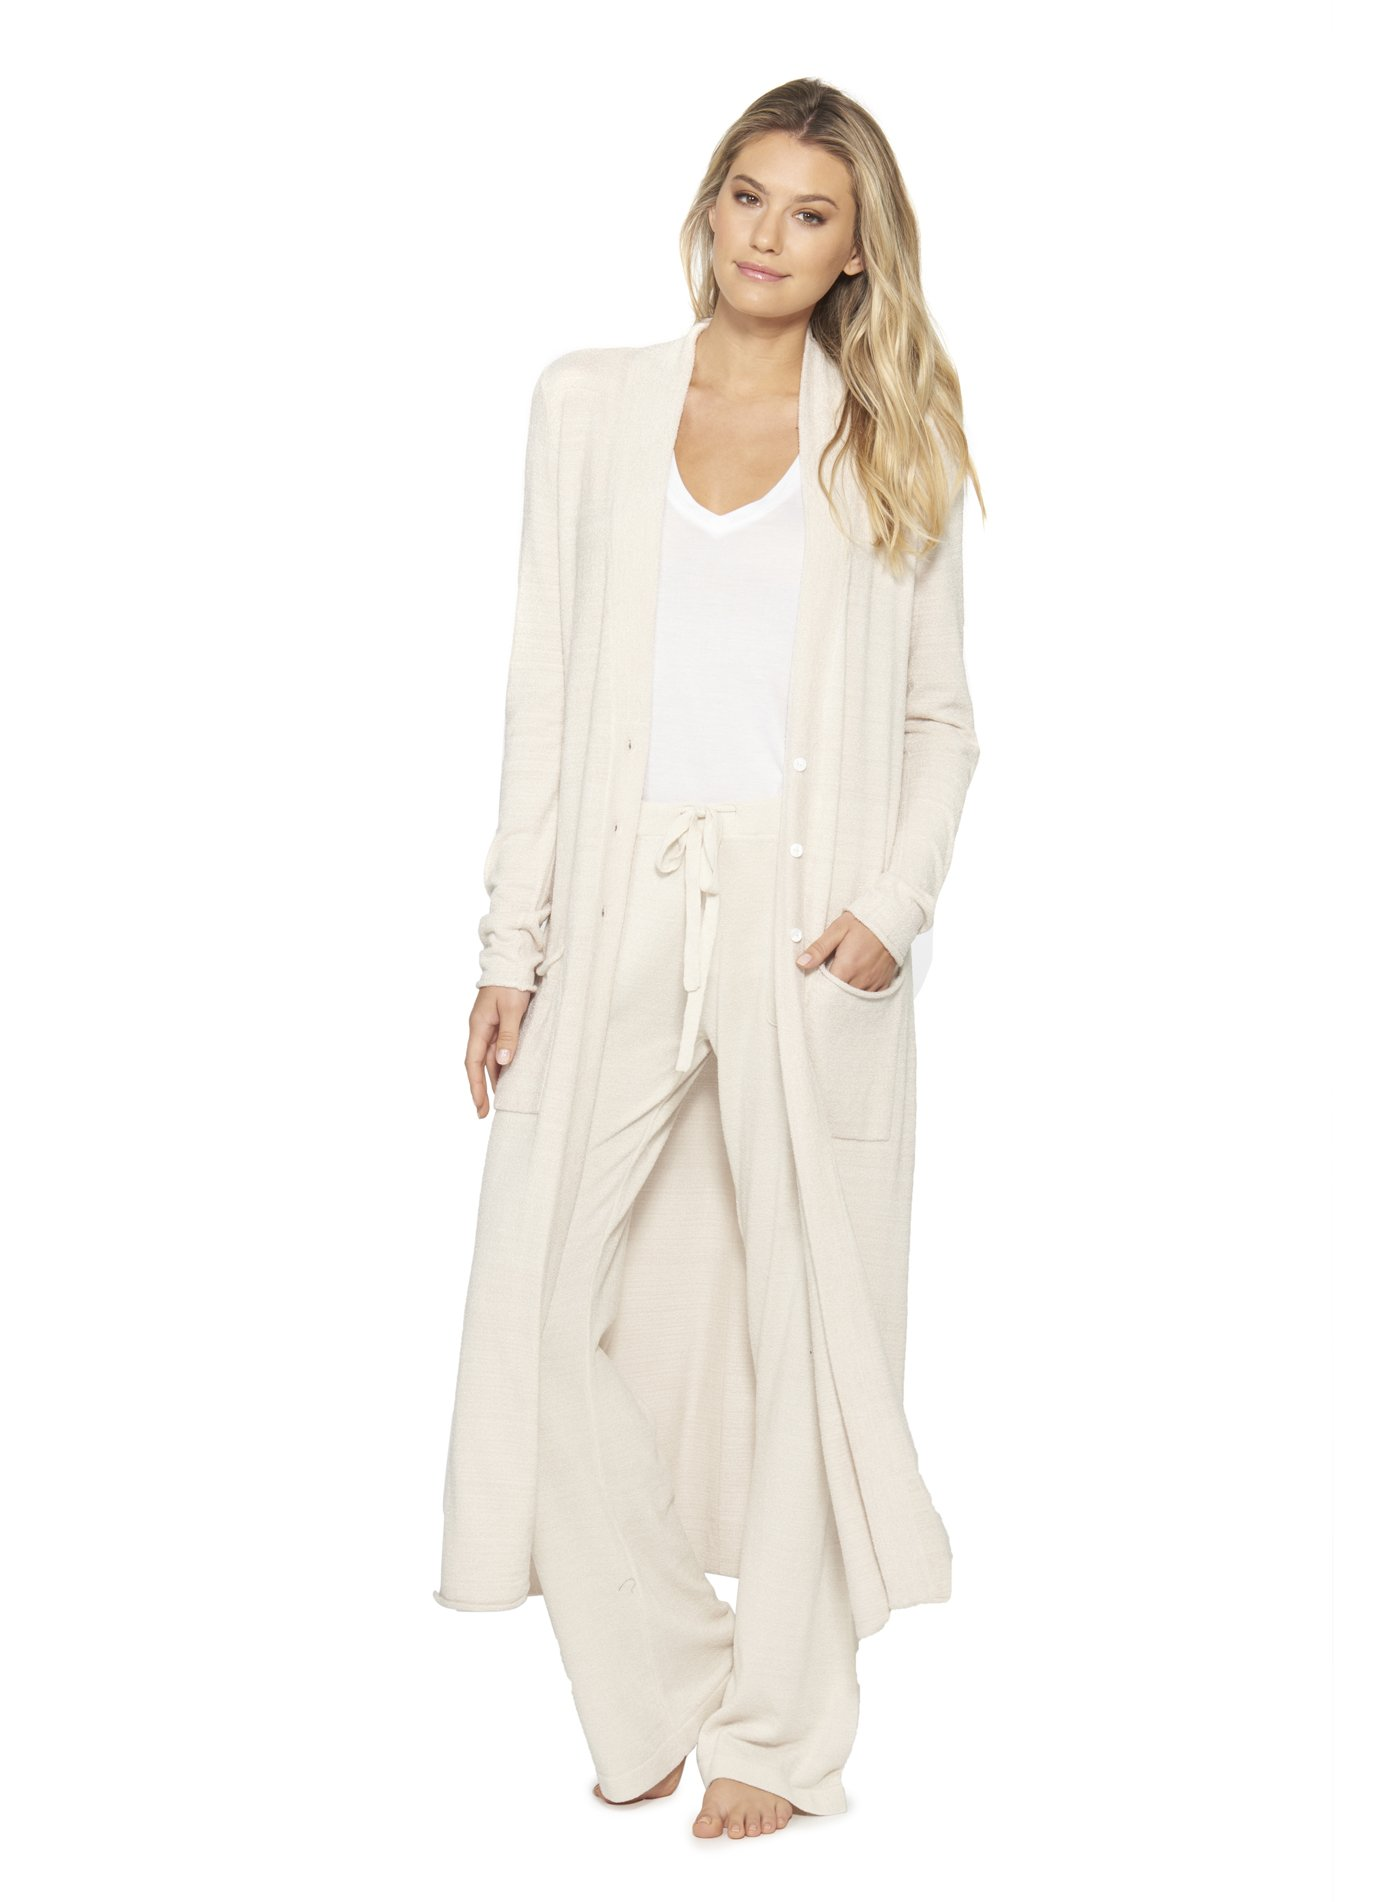 Barefoot Dreams CozyChic Ultra Lite Women's Duster, Long Sleeve, Open Front Long Maxi Cardigan Duster With Two Pockets-Sand Done, Beige,Medium